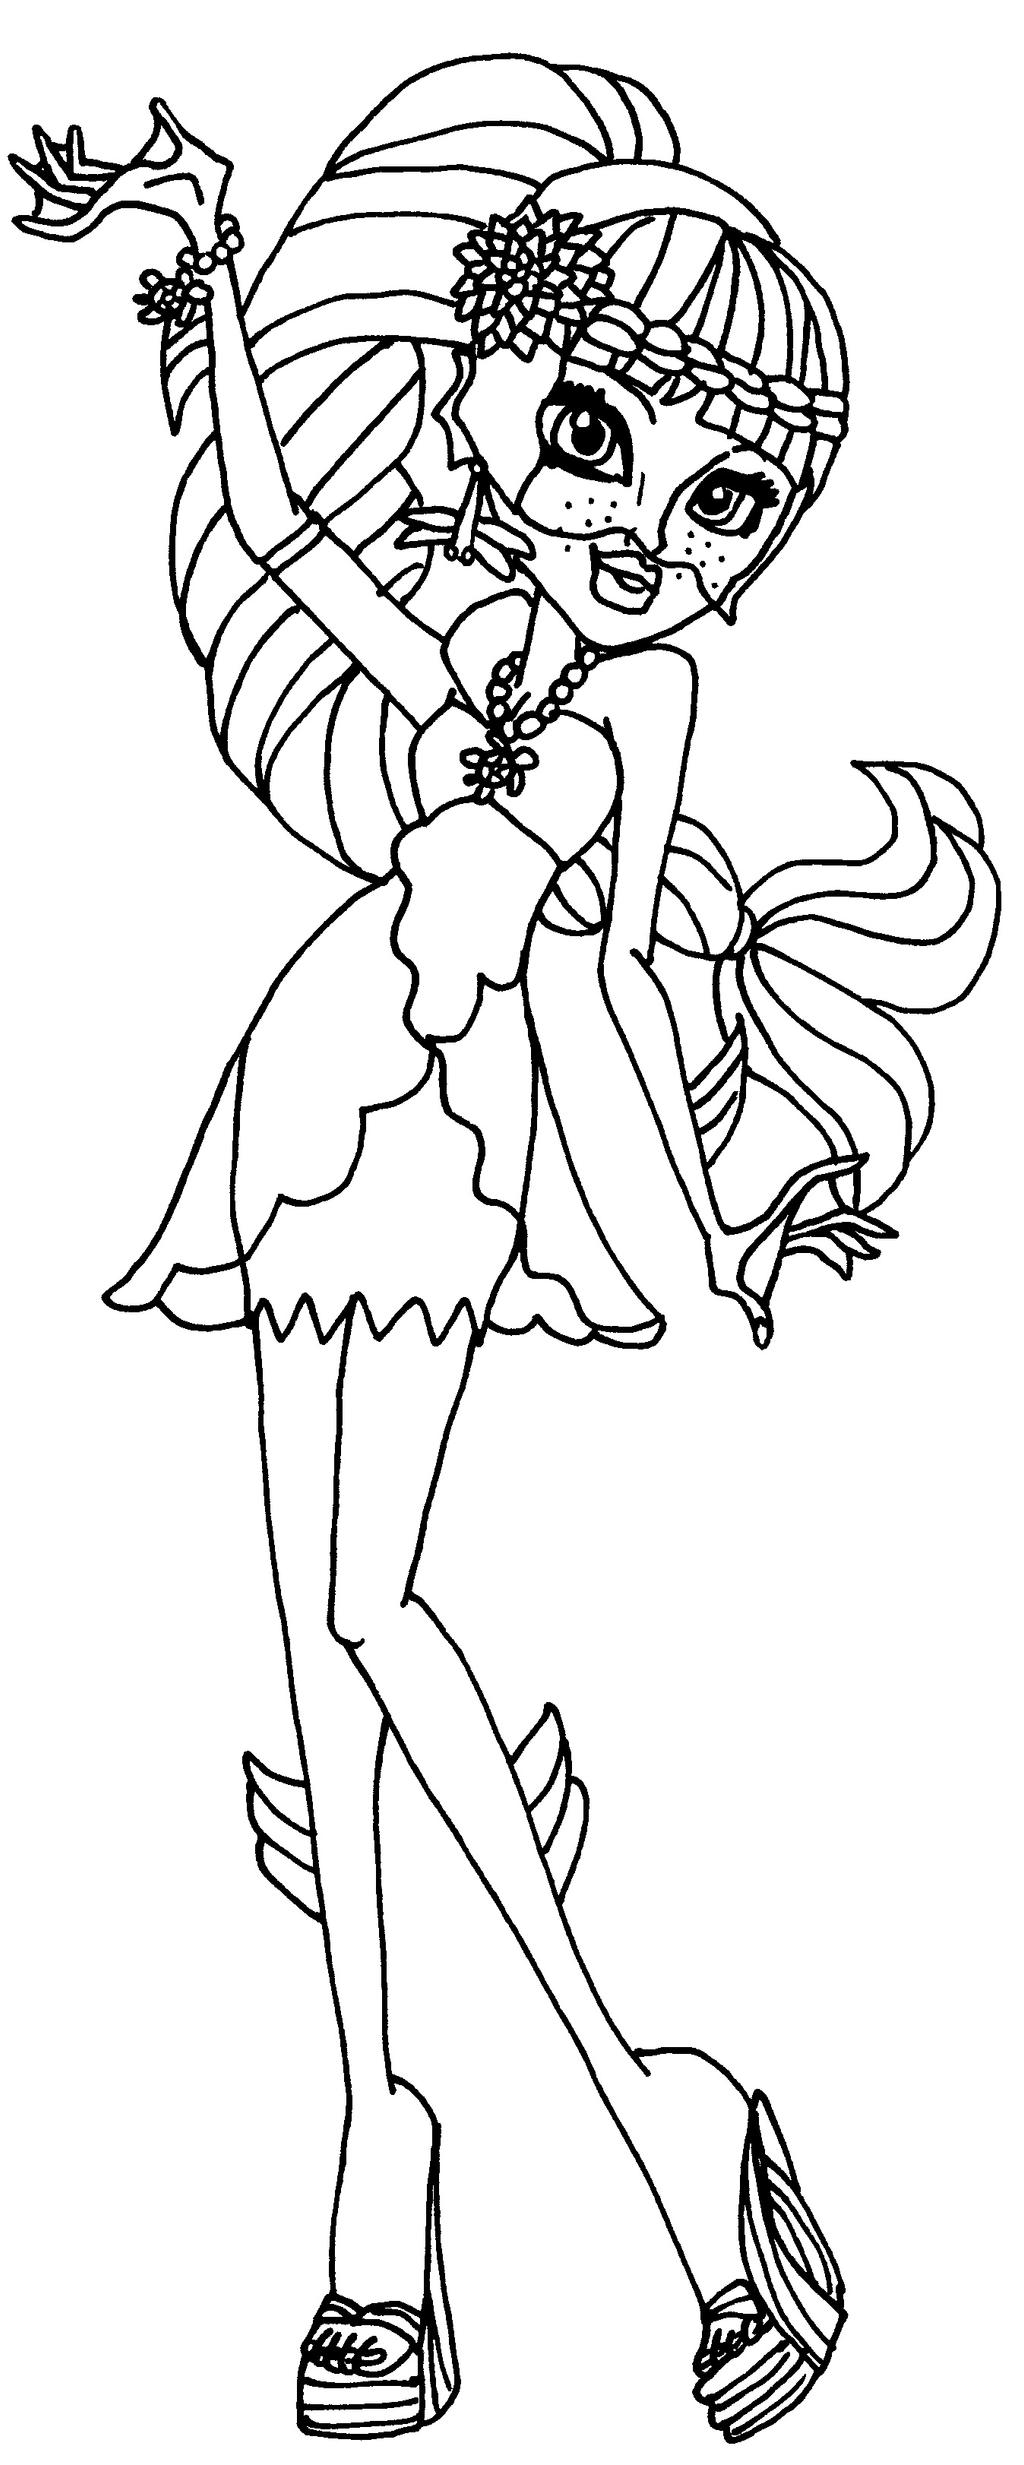 howleen 13 wishes coloring pages - photo#8